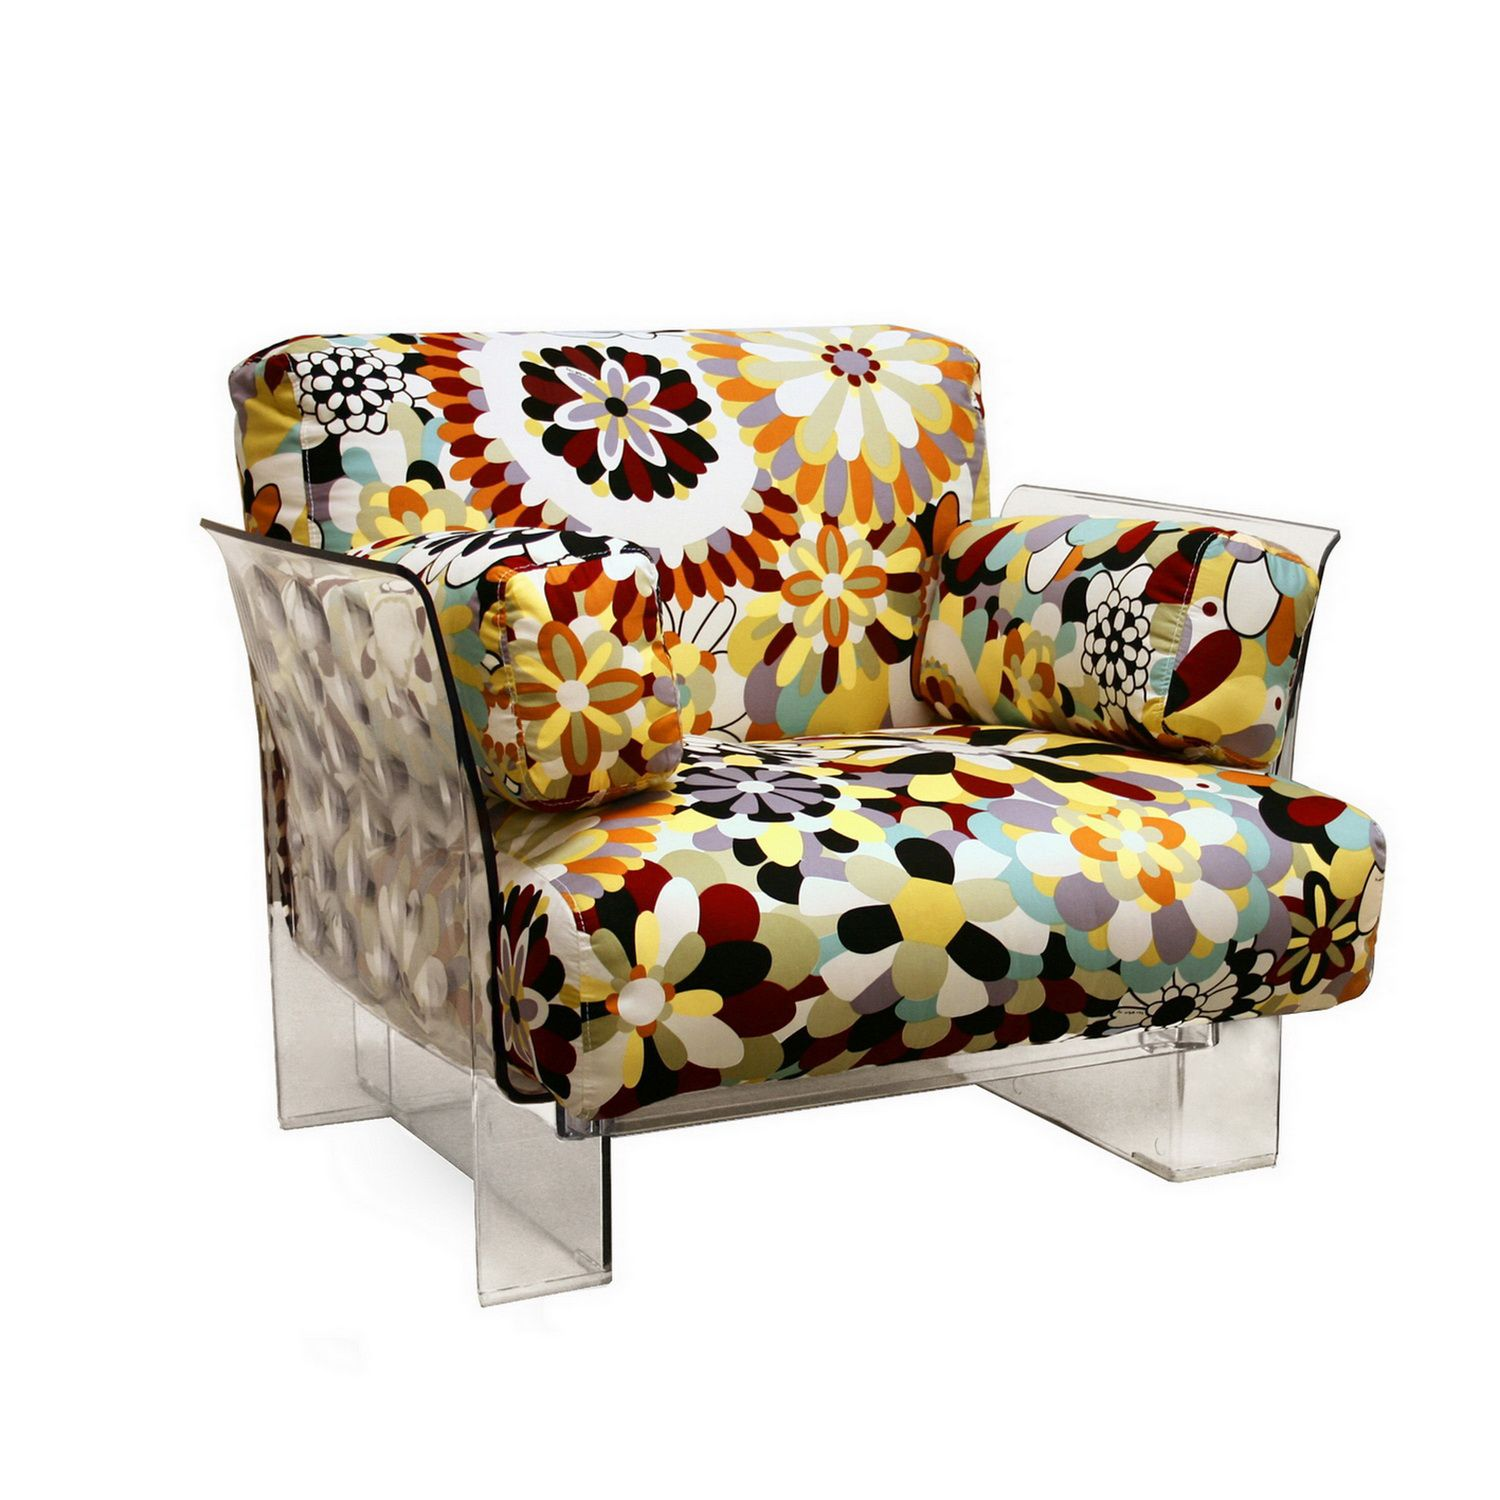 Floral Chair Baxton Studio Pop Chair With Floral Pattern Cushions And